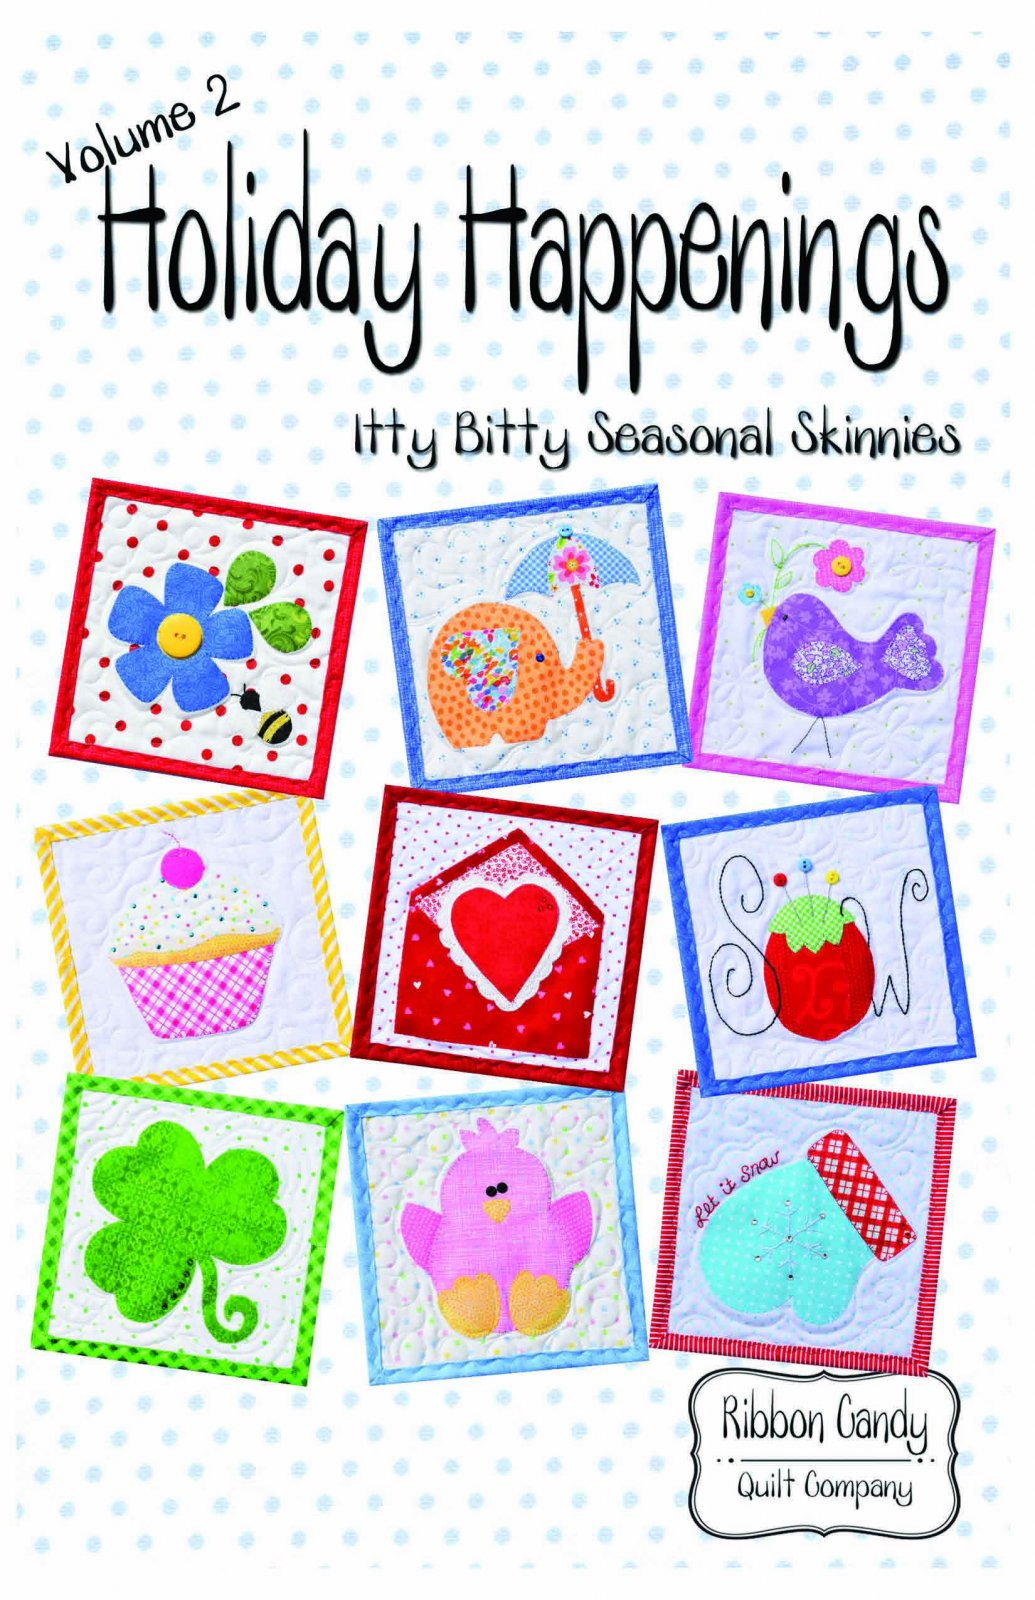 Holiday Happenings Vol 2